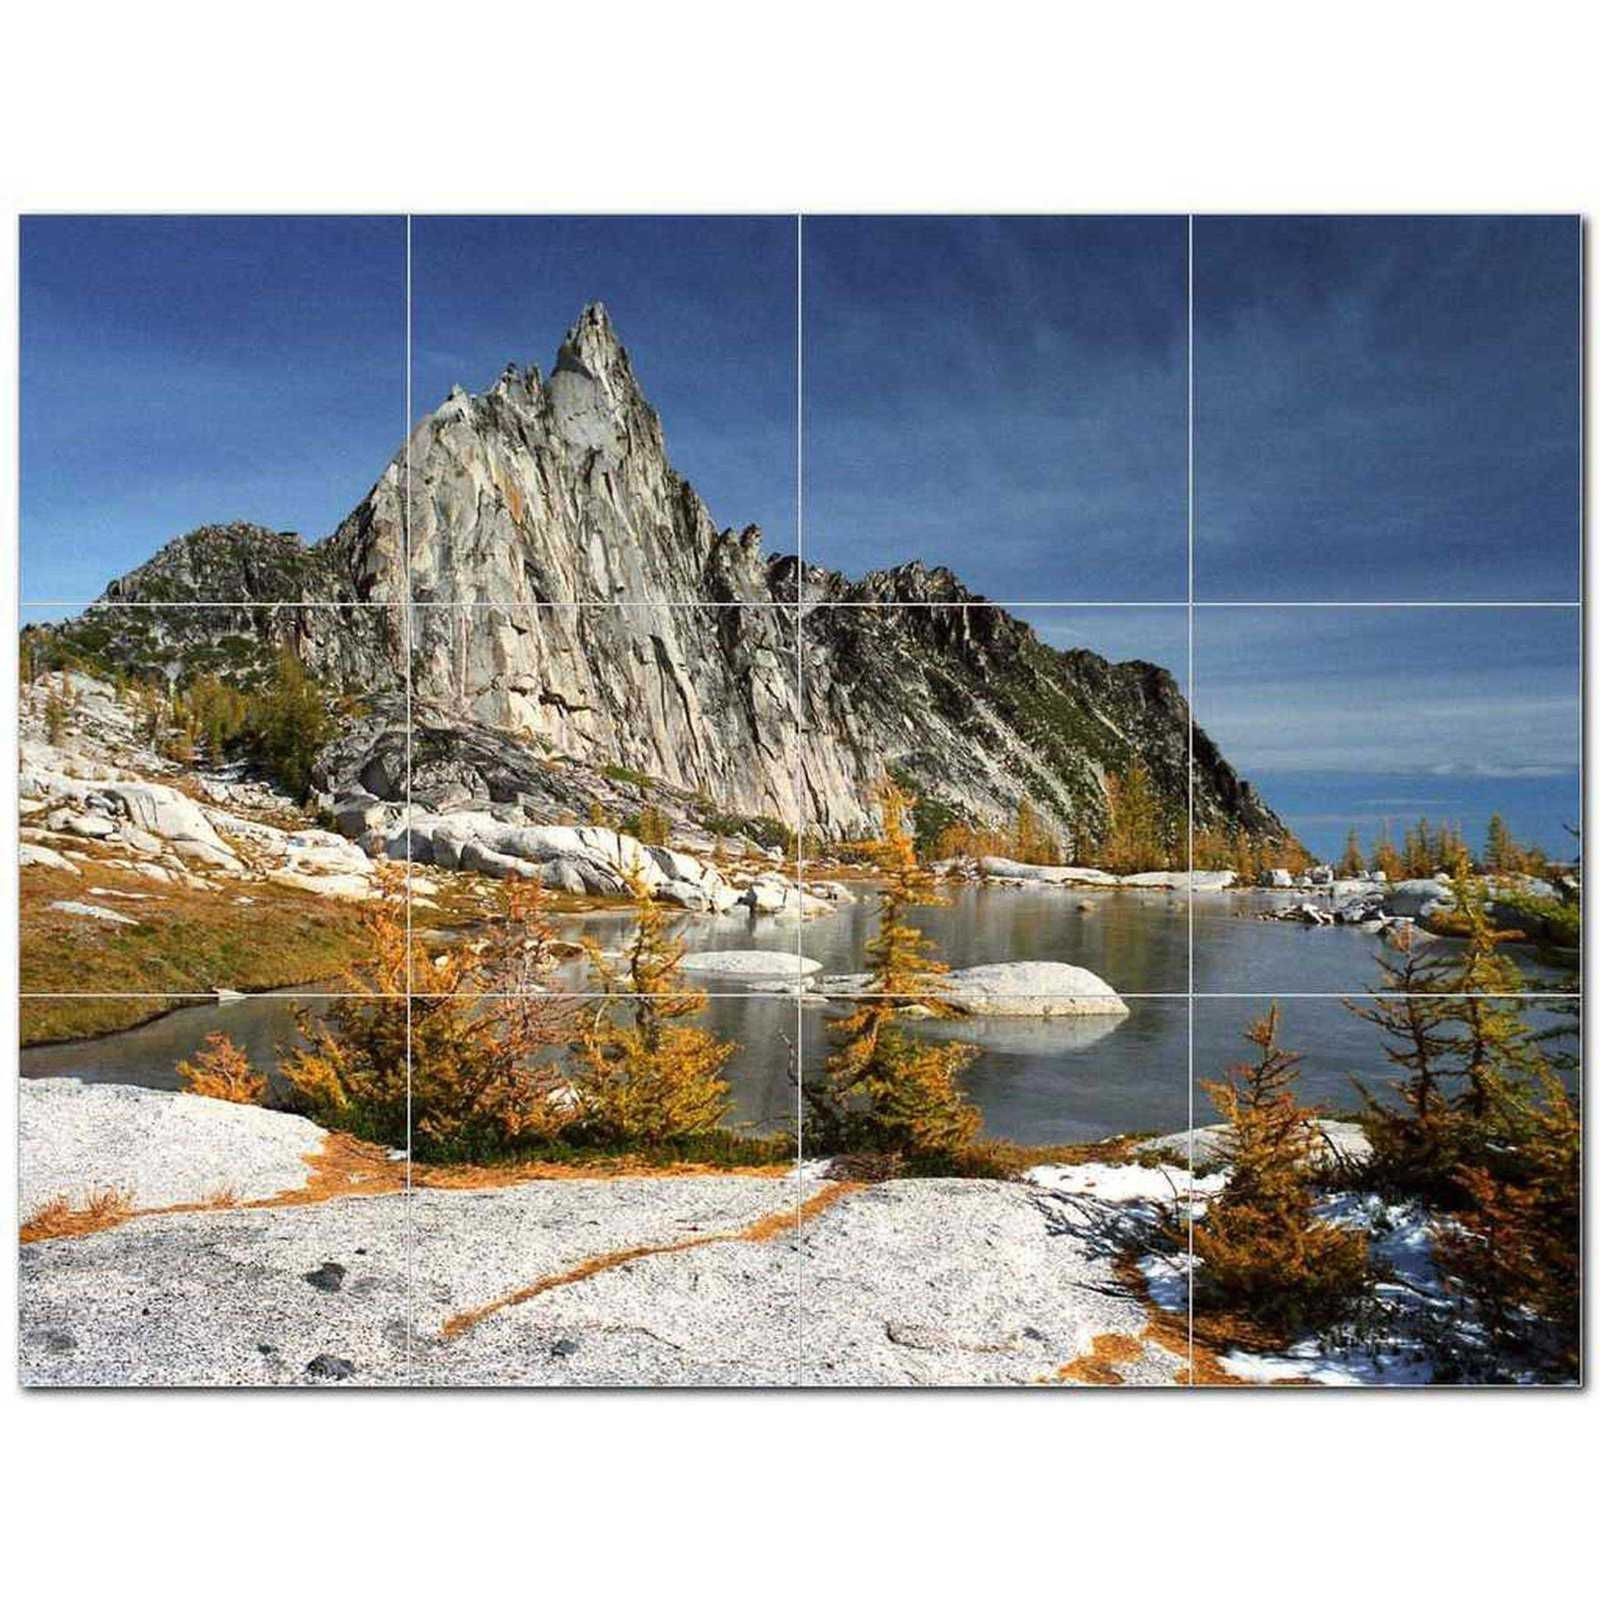 Primary image for Mountain Photo Ceramic Tile Mural Kitchen Backsplash Bathroom Shower BAZ405525